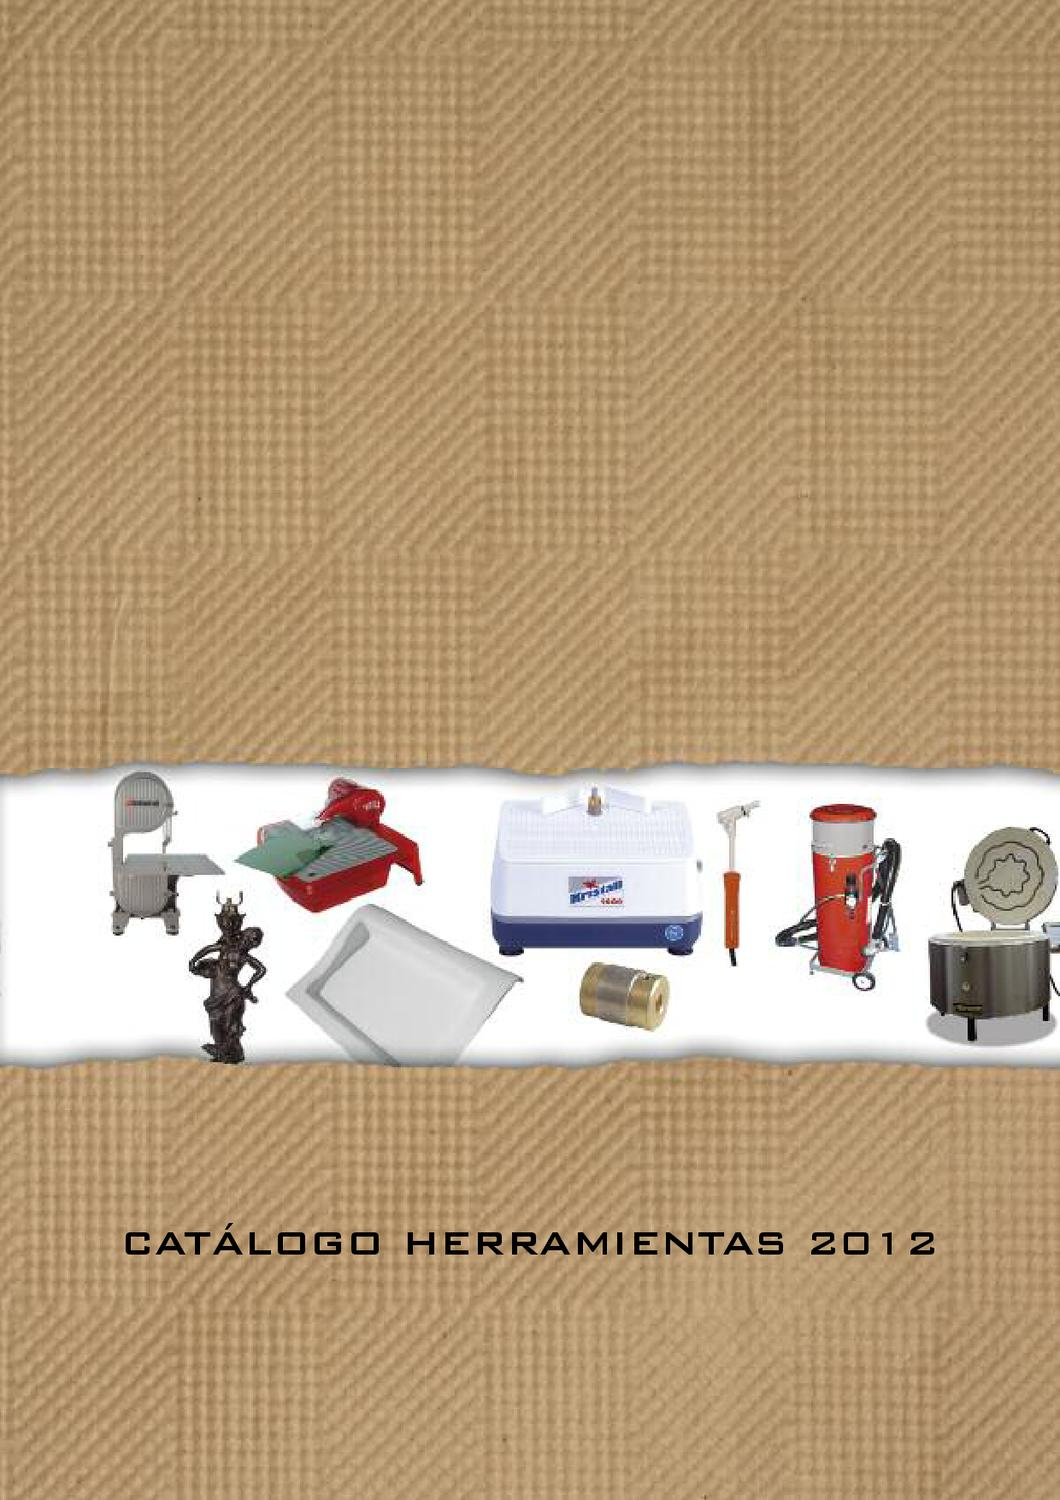 Catalogo herrramientas 2012 web by Francisco López - issuu